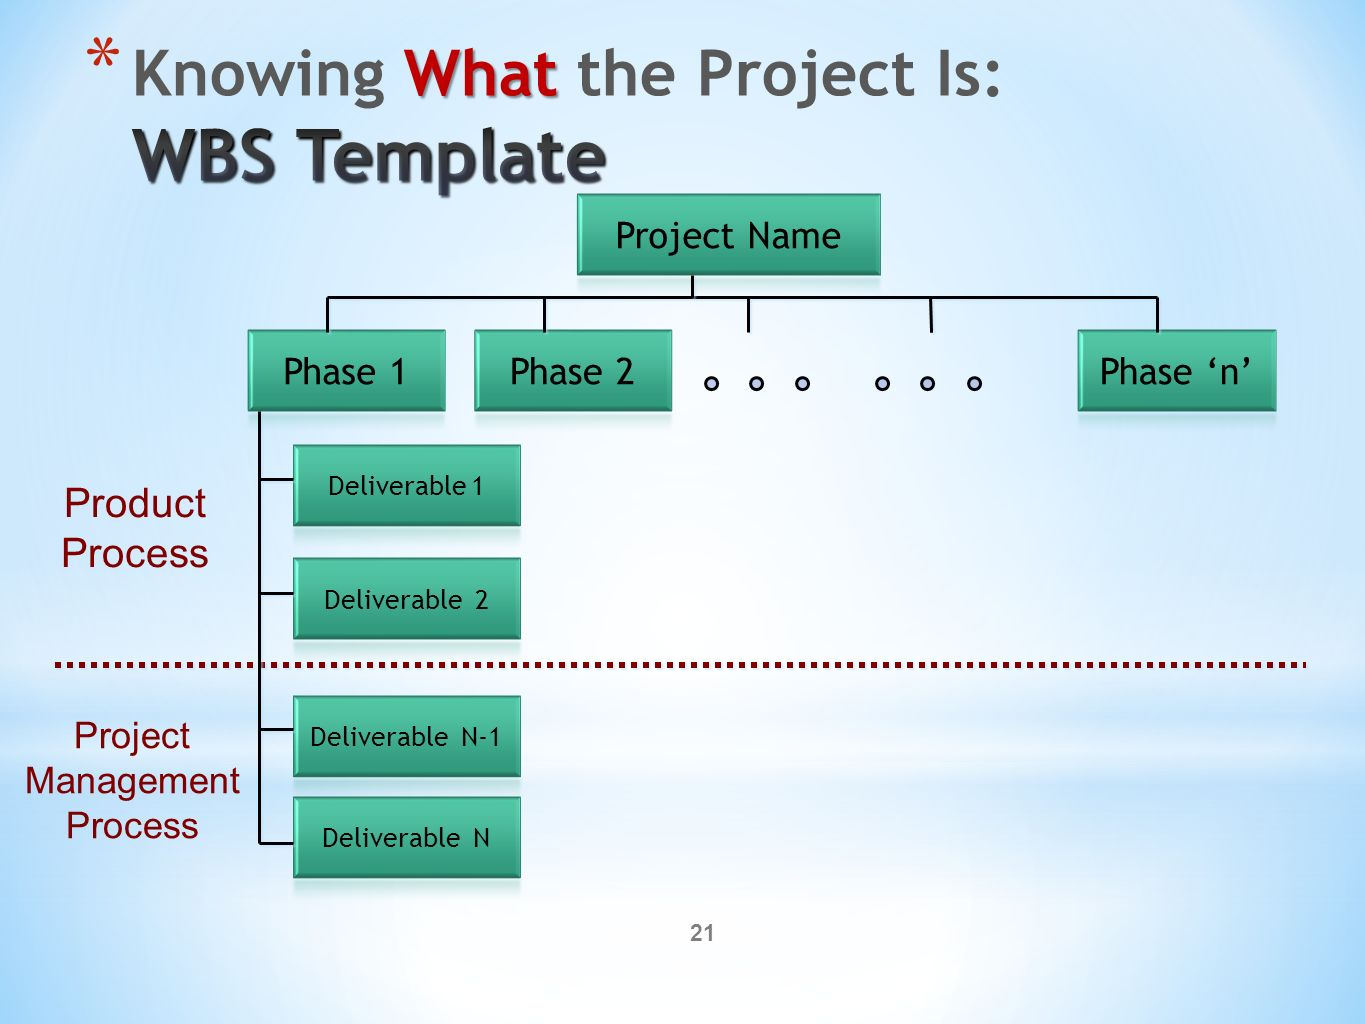 what is the wbs of woody 2000 project case study Solution contains high level overview of woody's 2000 project 4quality approach for custom woodworking company- woody 2000 project the case gender studies.